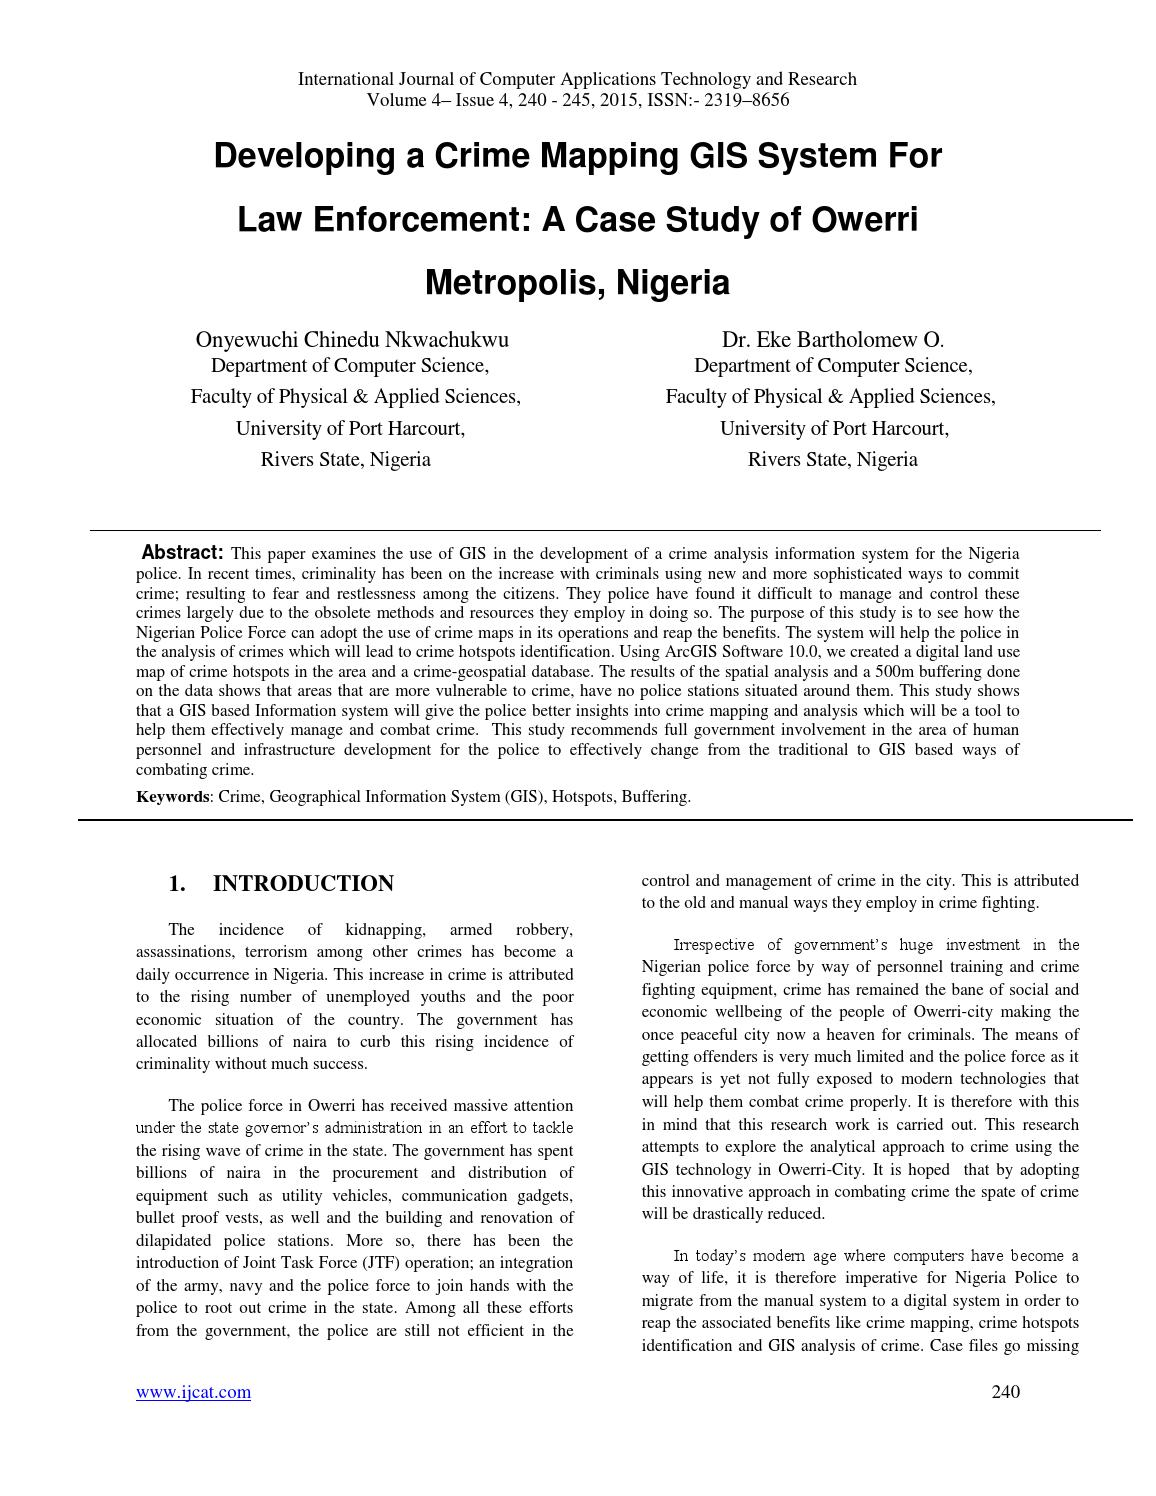 Developing a Crime Mapping GIS System For Law Enforcement: A